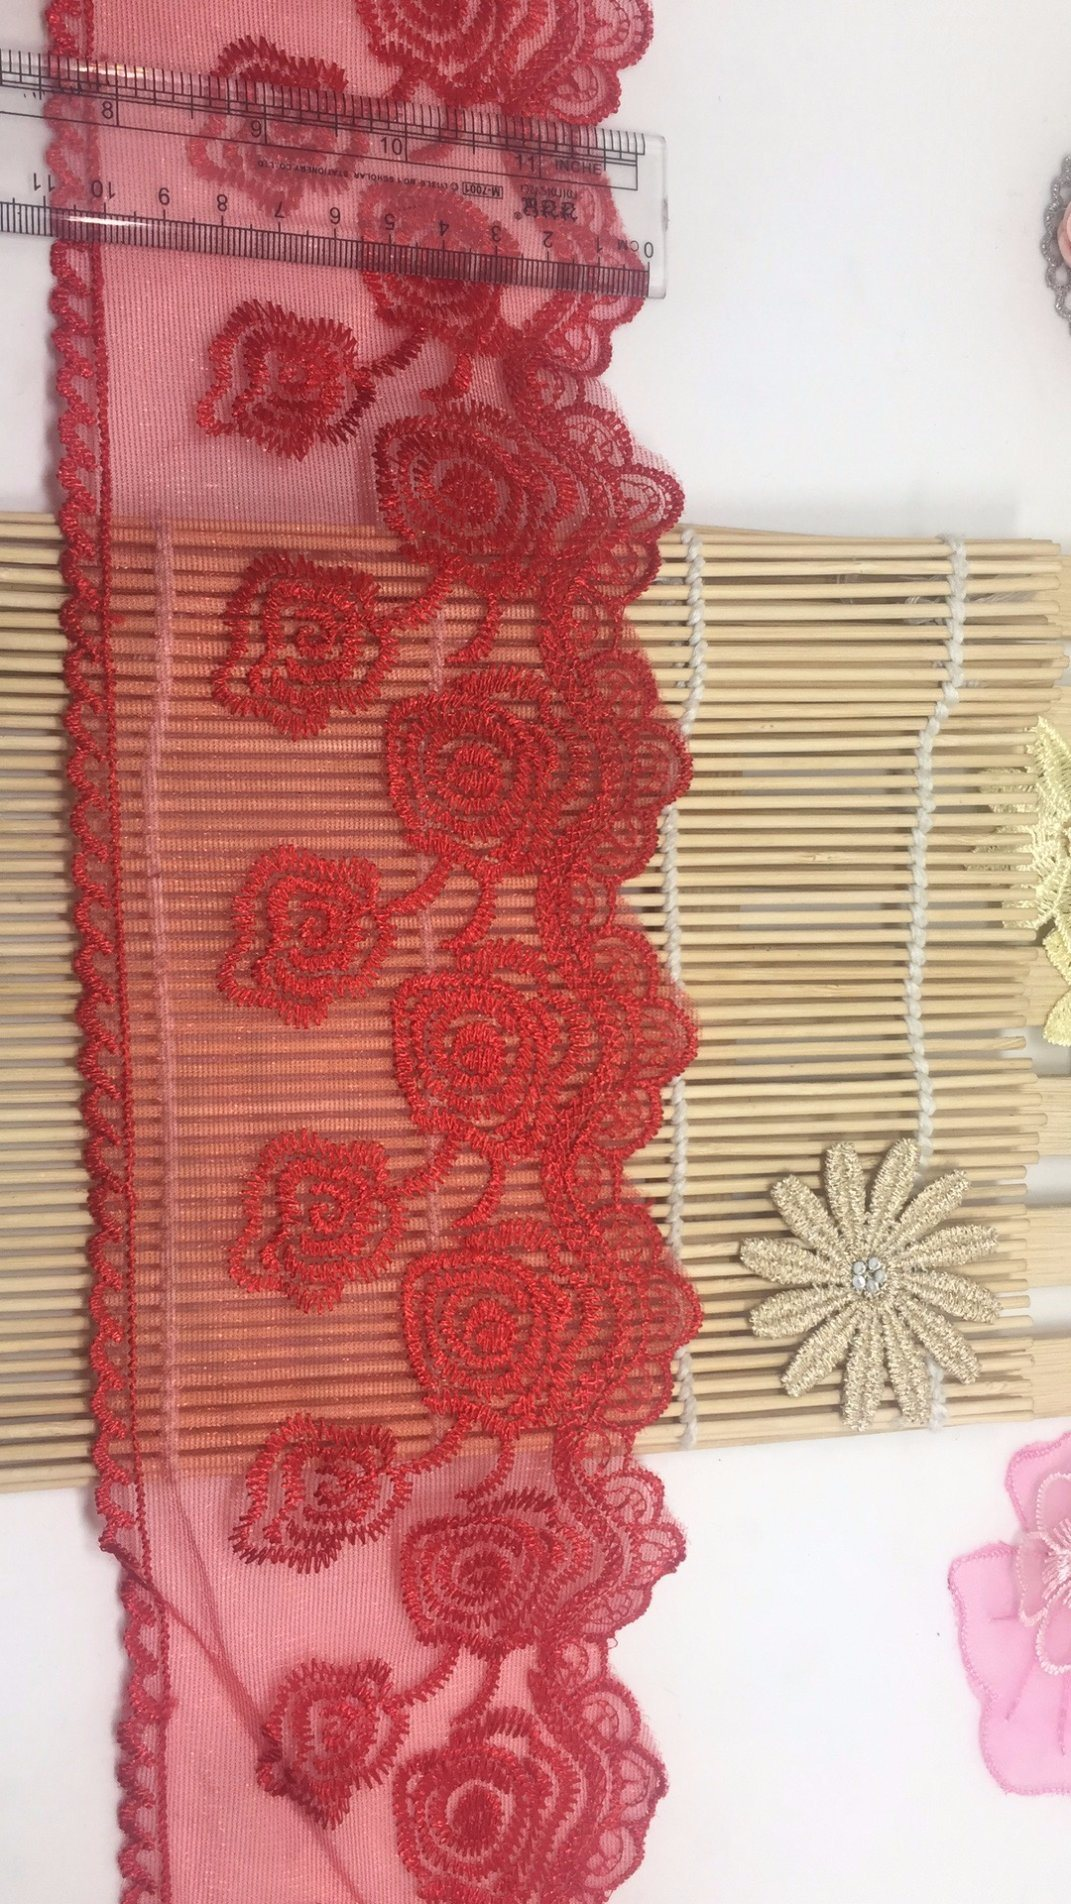 Apparel Accessories Fashionable 11cm Width Factory Stock Rose Embroidery Purfle Trimming Net Mesh Lace for Women Garments & Home Textiles & Curtains